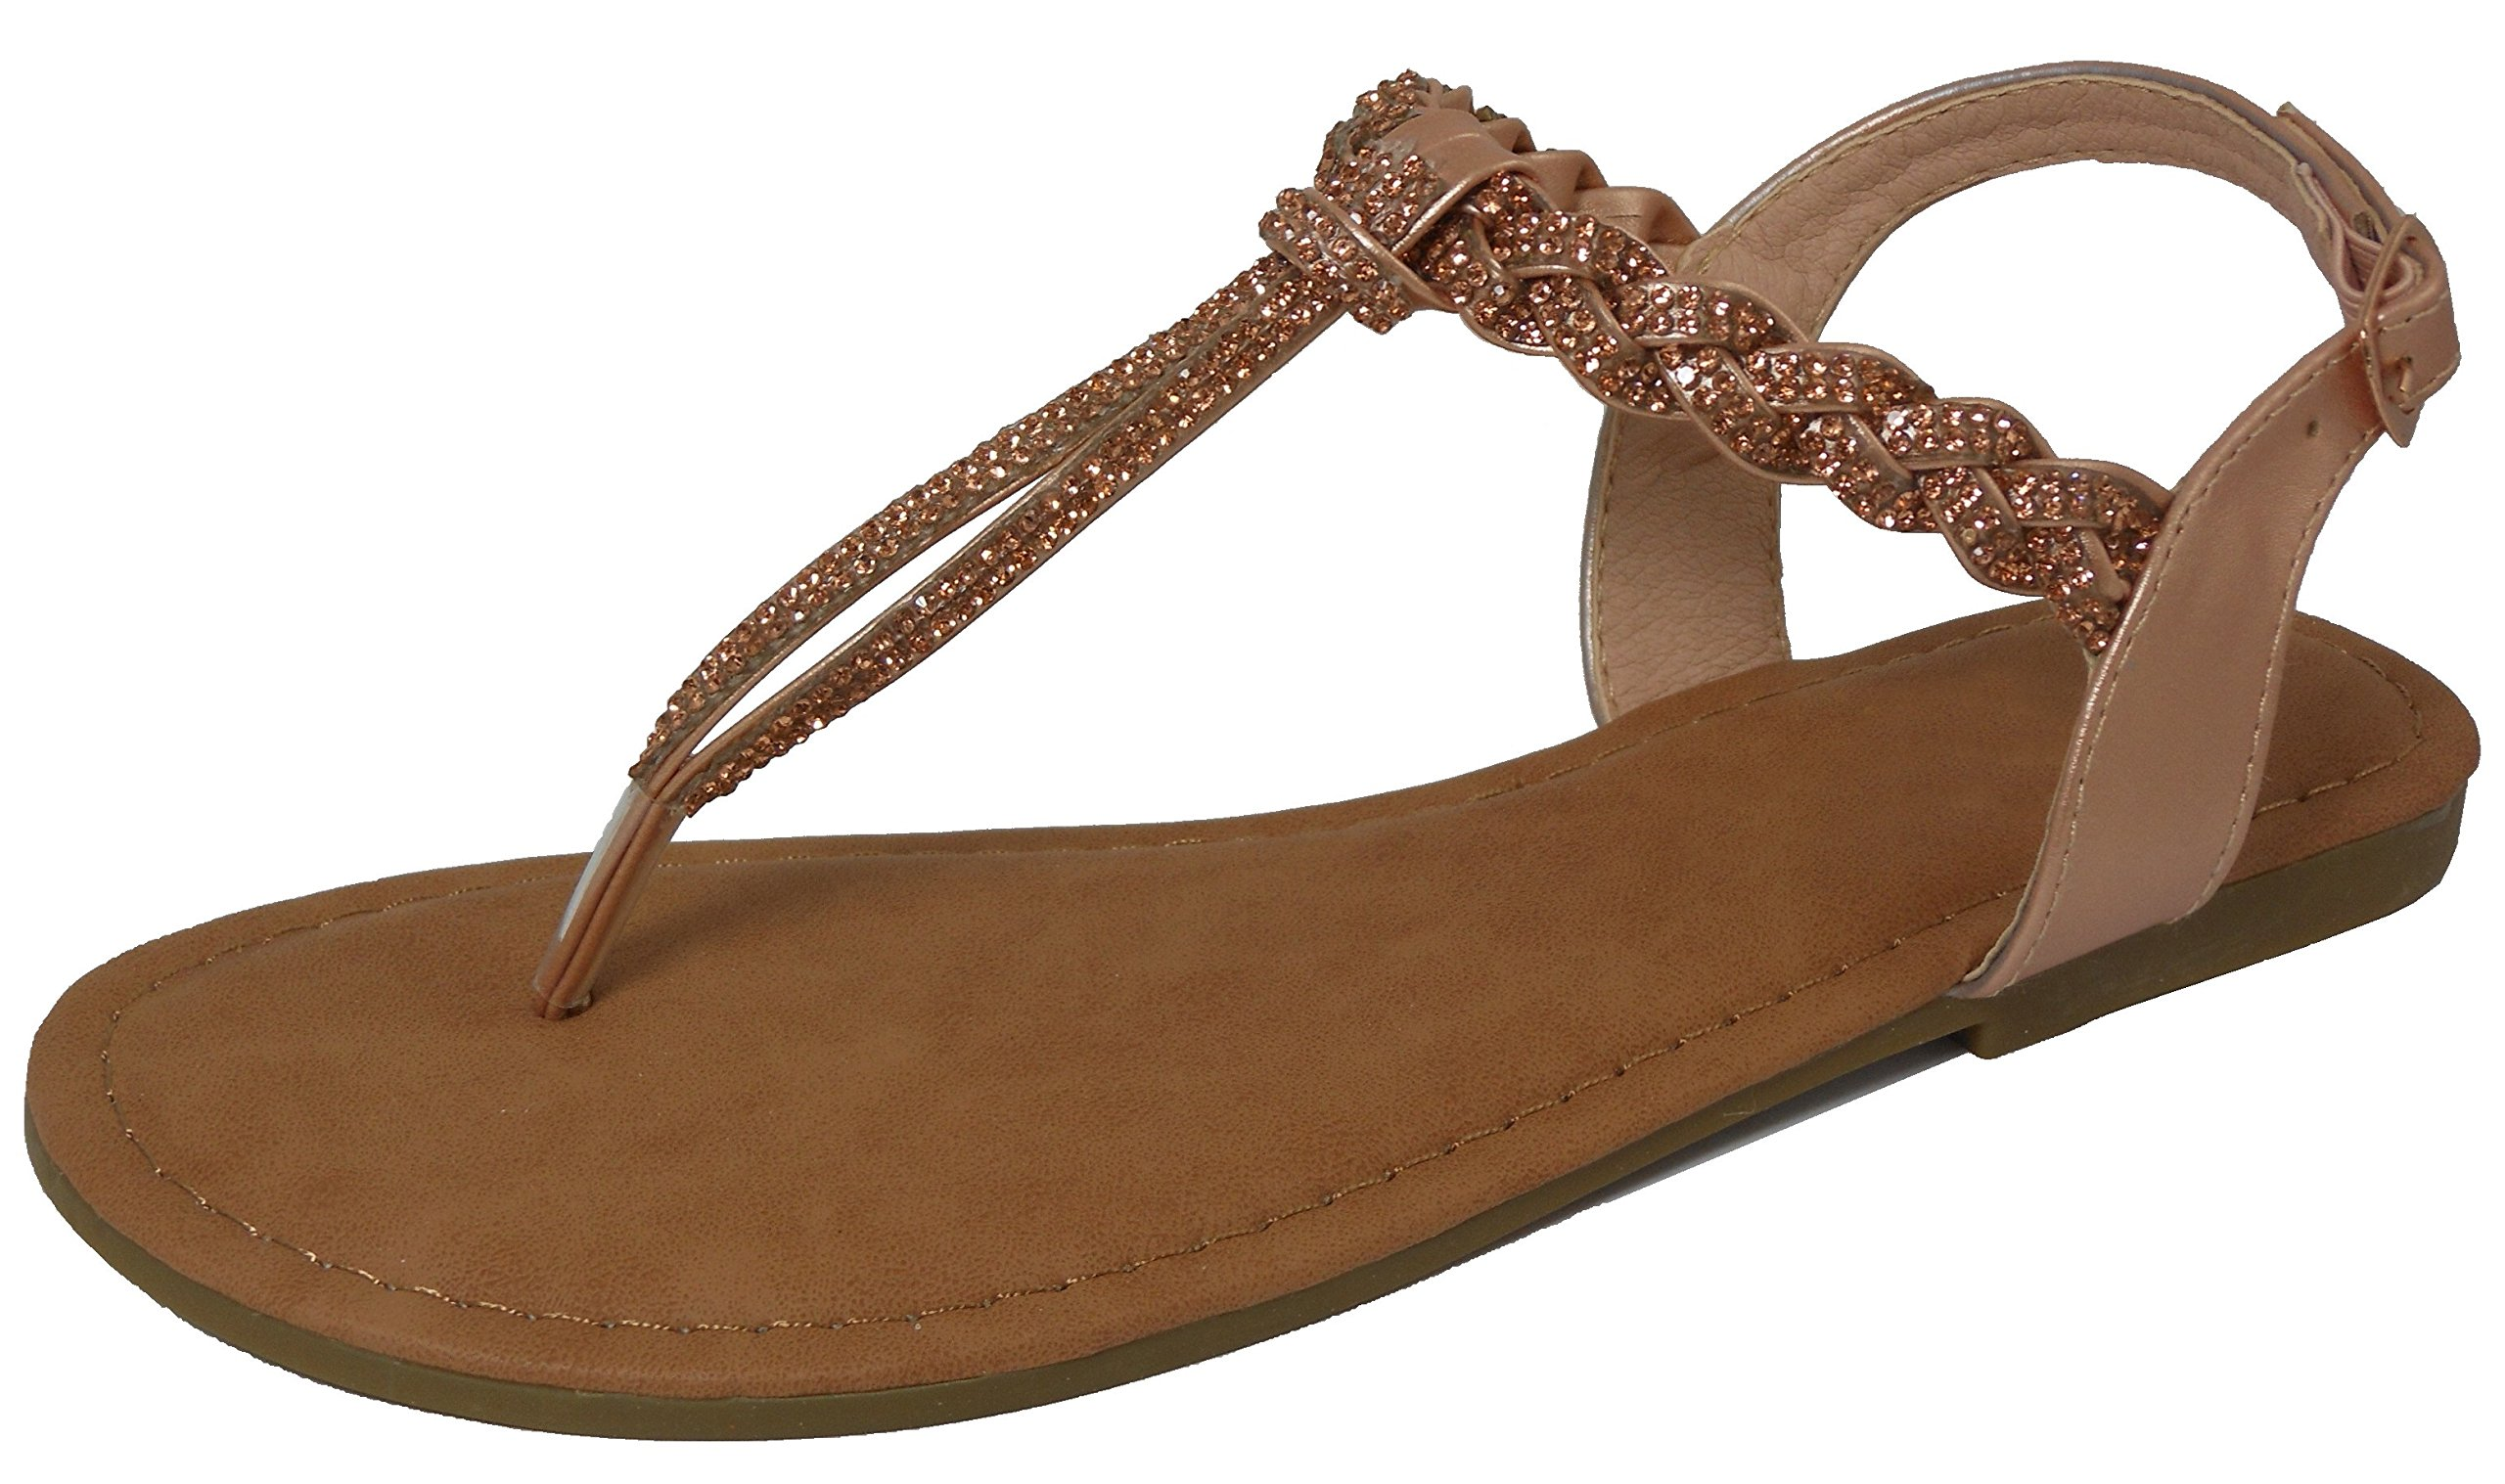 9dfccd68104 Cambridge Select Women s Open Toe T-Strap Thong Braided Strappy Crystal  Rhinestone Slingback Flat Sandal